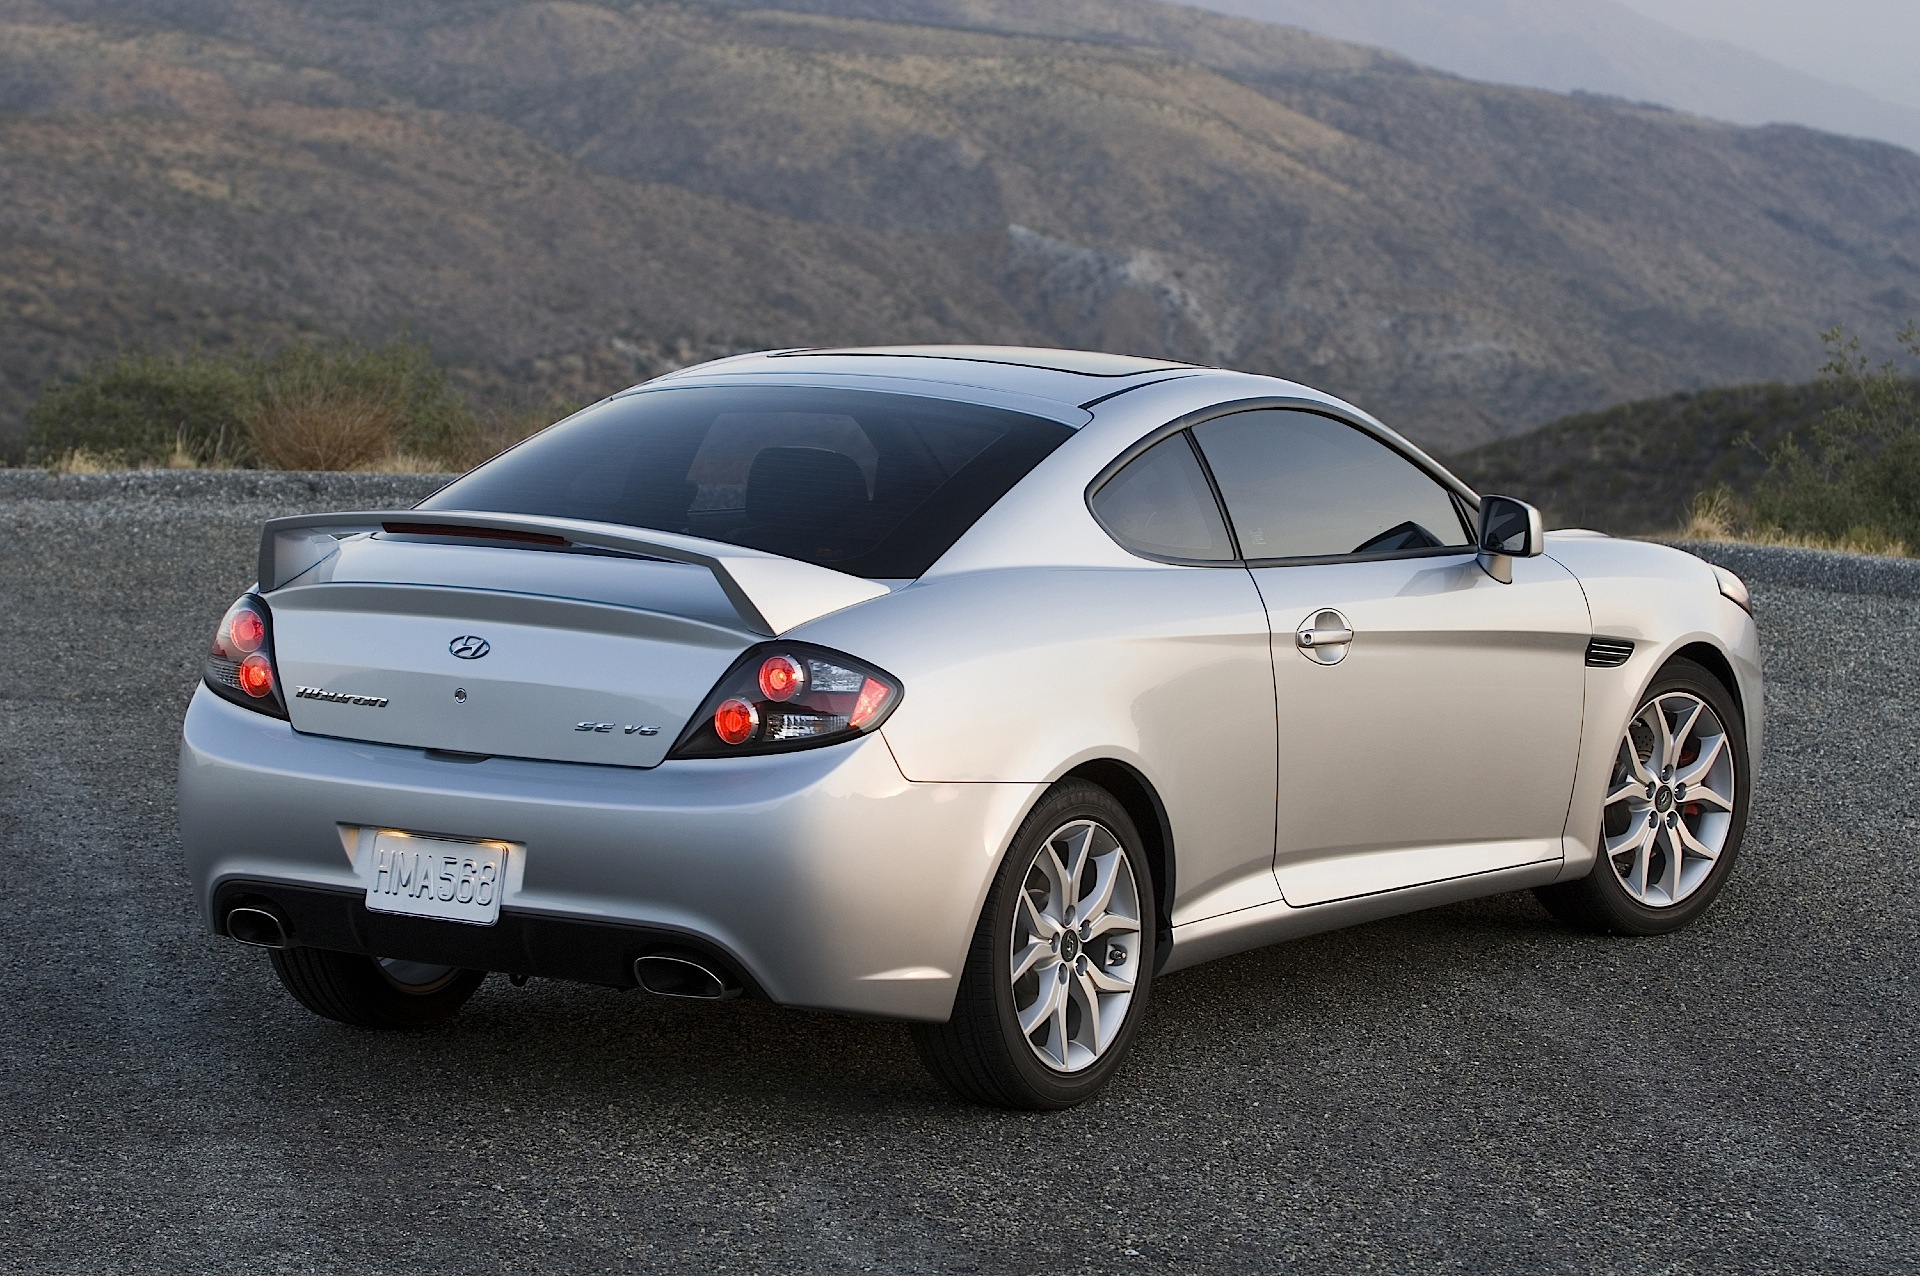 hyundai coupe tiburon specs photos 2007 2008 2009 autoevolution. Black Bedroom Furniture Sets. Home Design Ideas